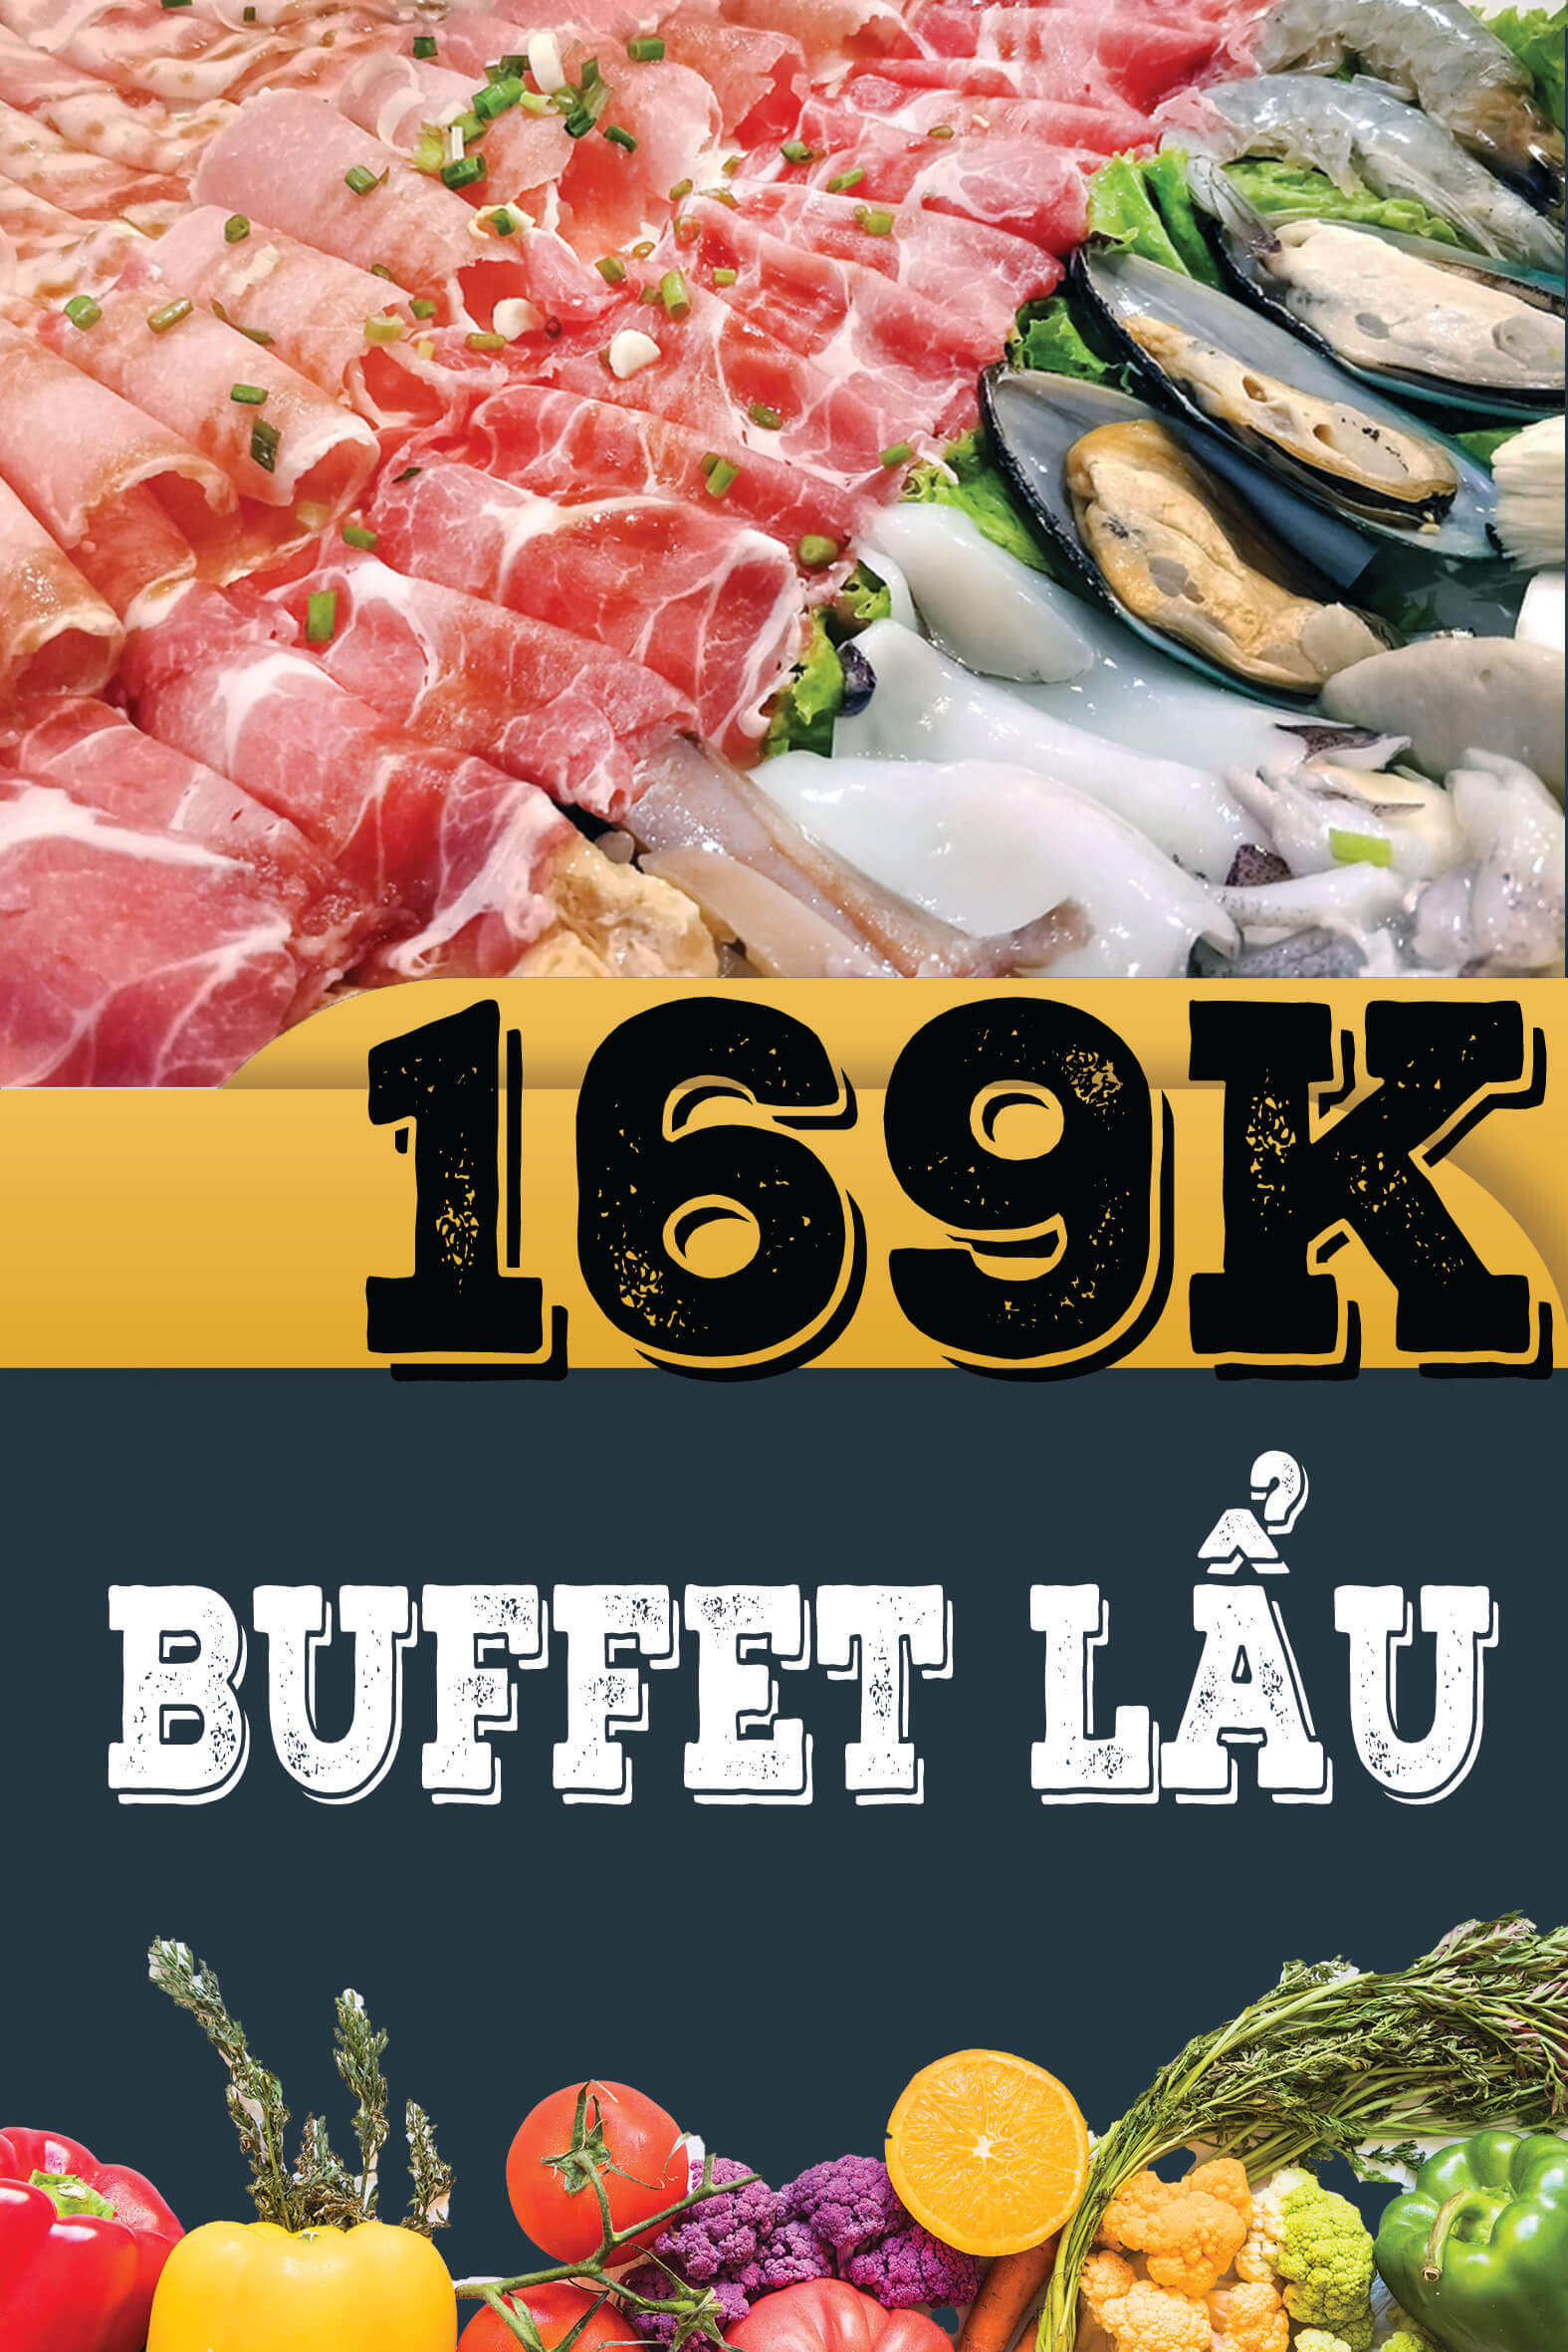 Menu Buffet Lẩu 169k